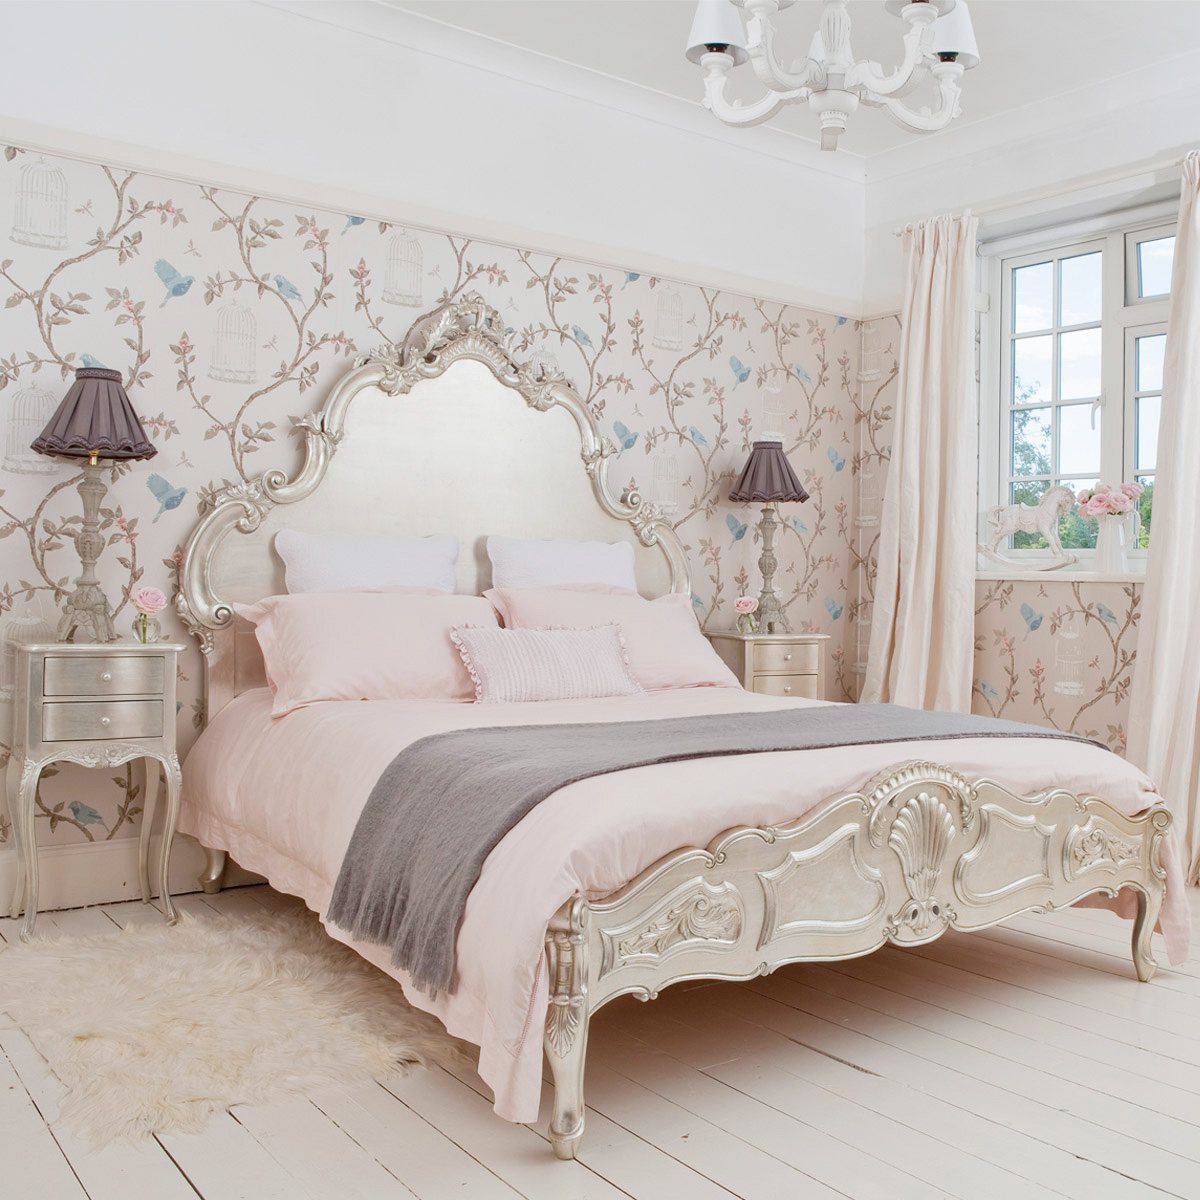 French bedroom furniture image of: french bedroom decor BIAFUSV